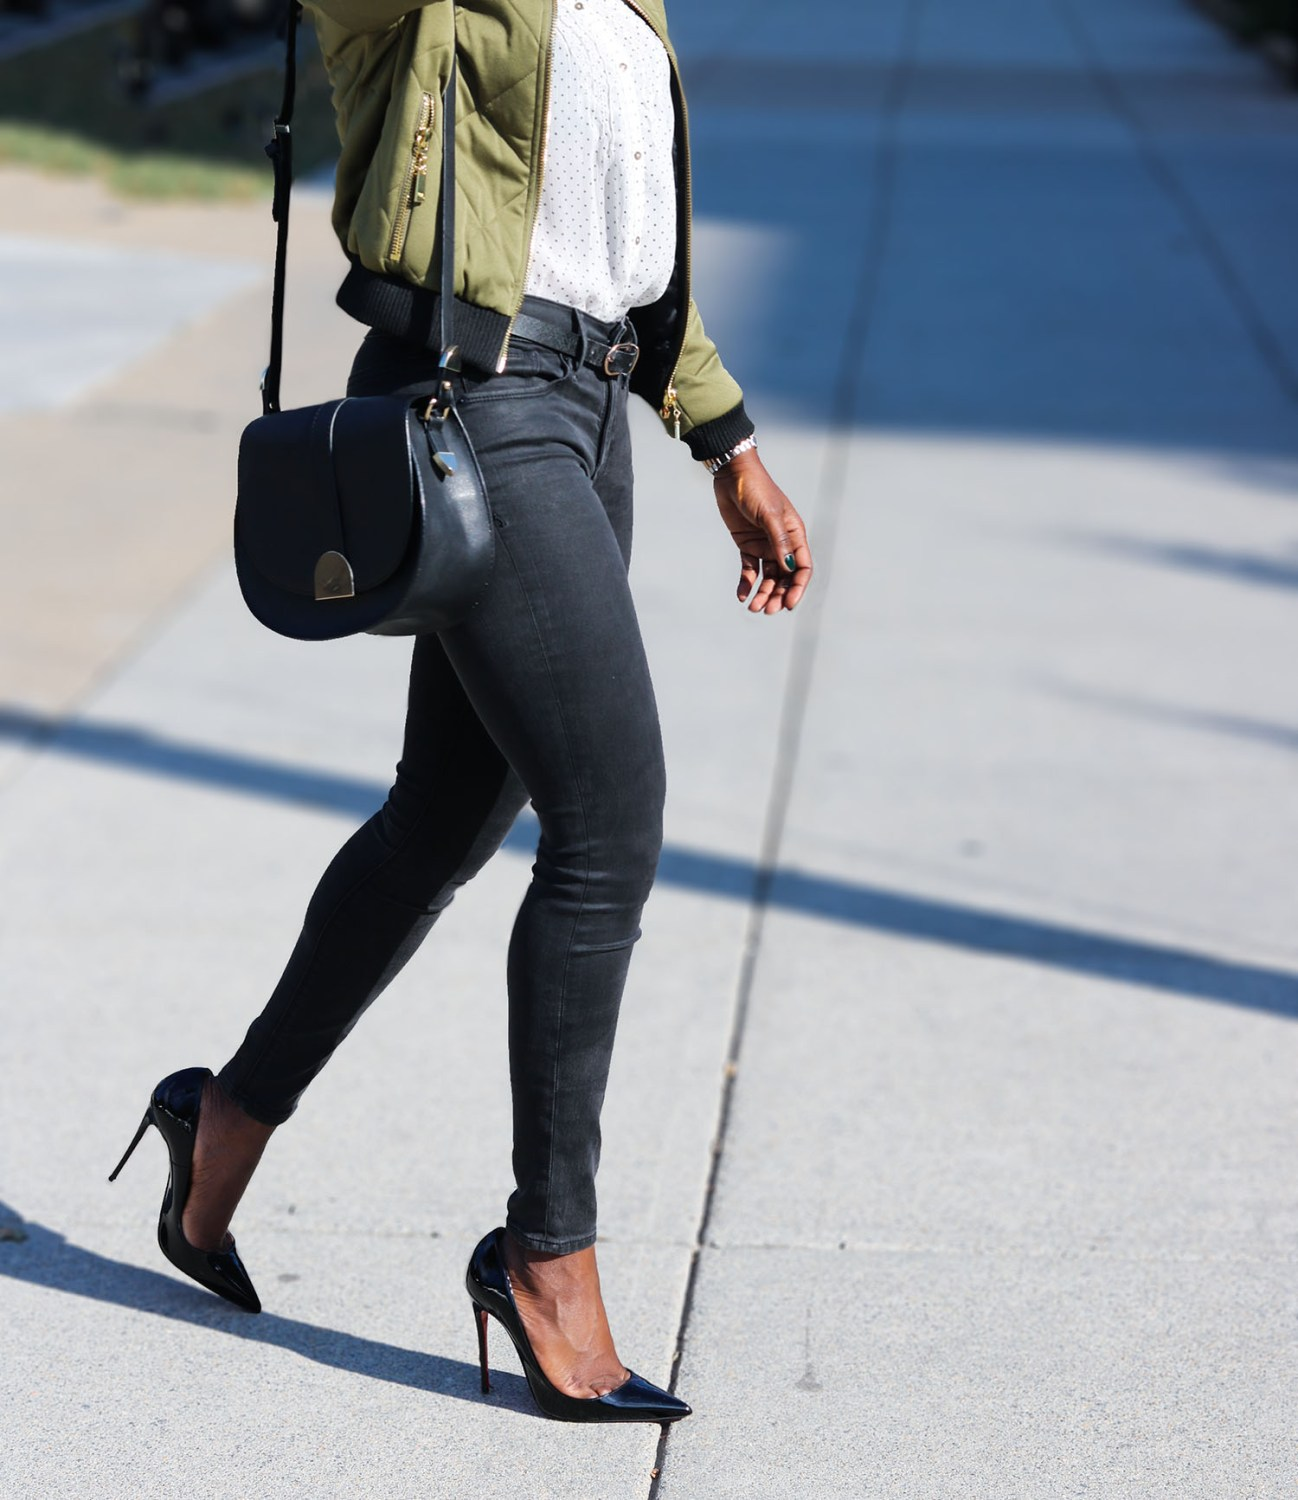 style-synopsis-bomber-jacket-fall-outfit-look